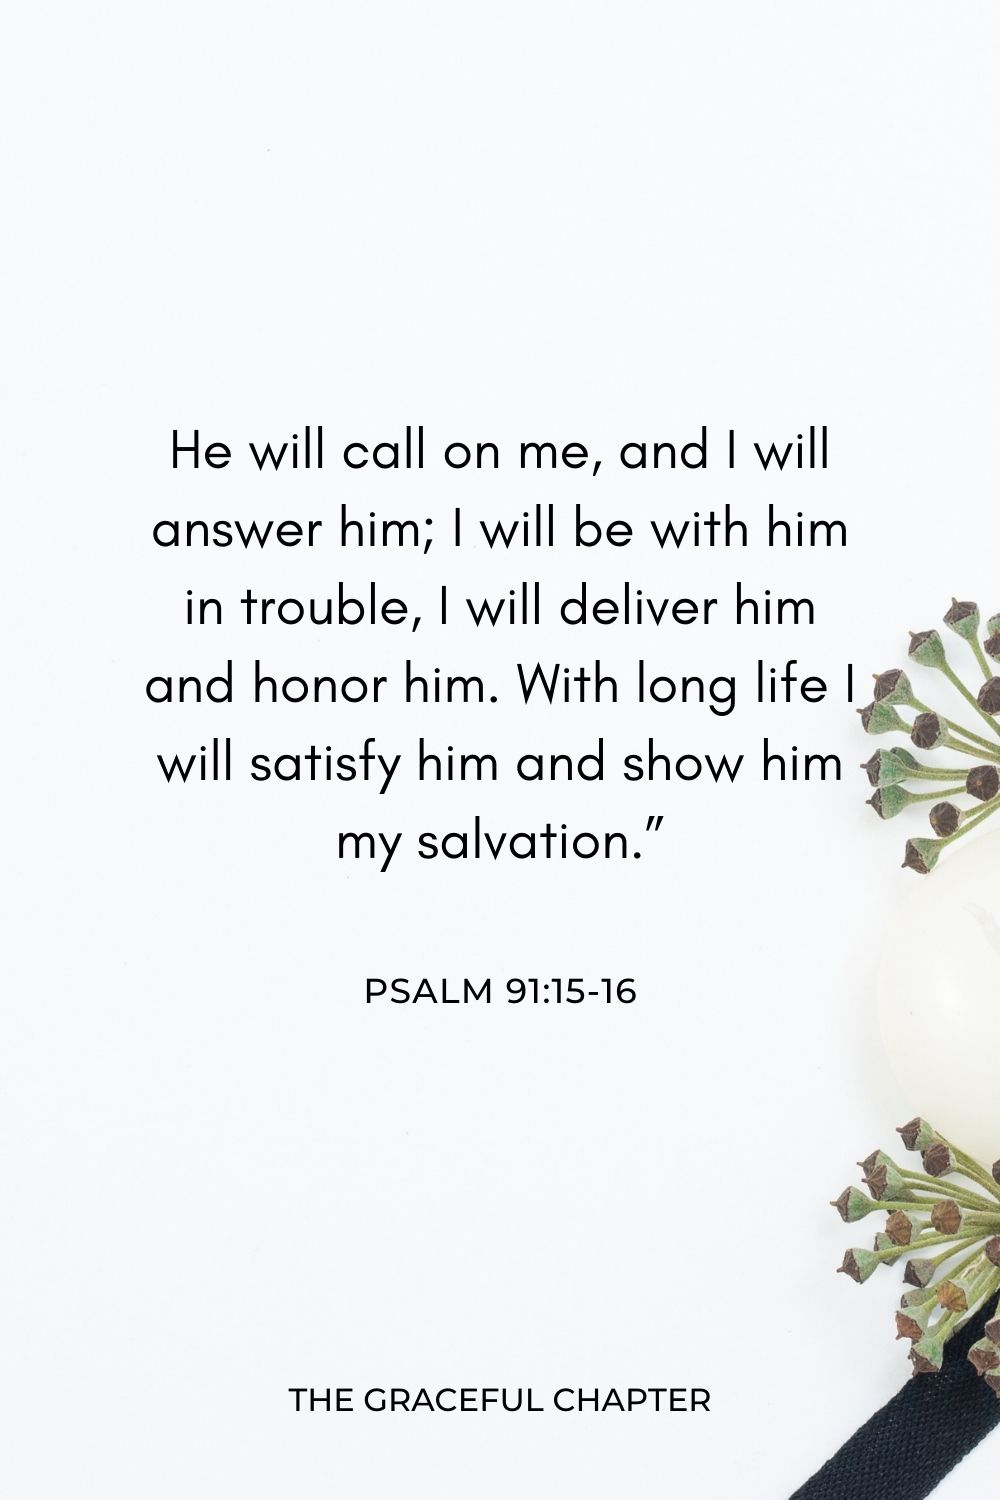 """He will call on me, and I will answer him; I will be with him in trouble, I will deliver him and honor him. With long life I will satisfy him and show him my salvation."""" Psalm 91:15-16"""